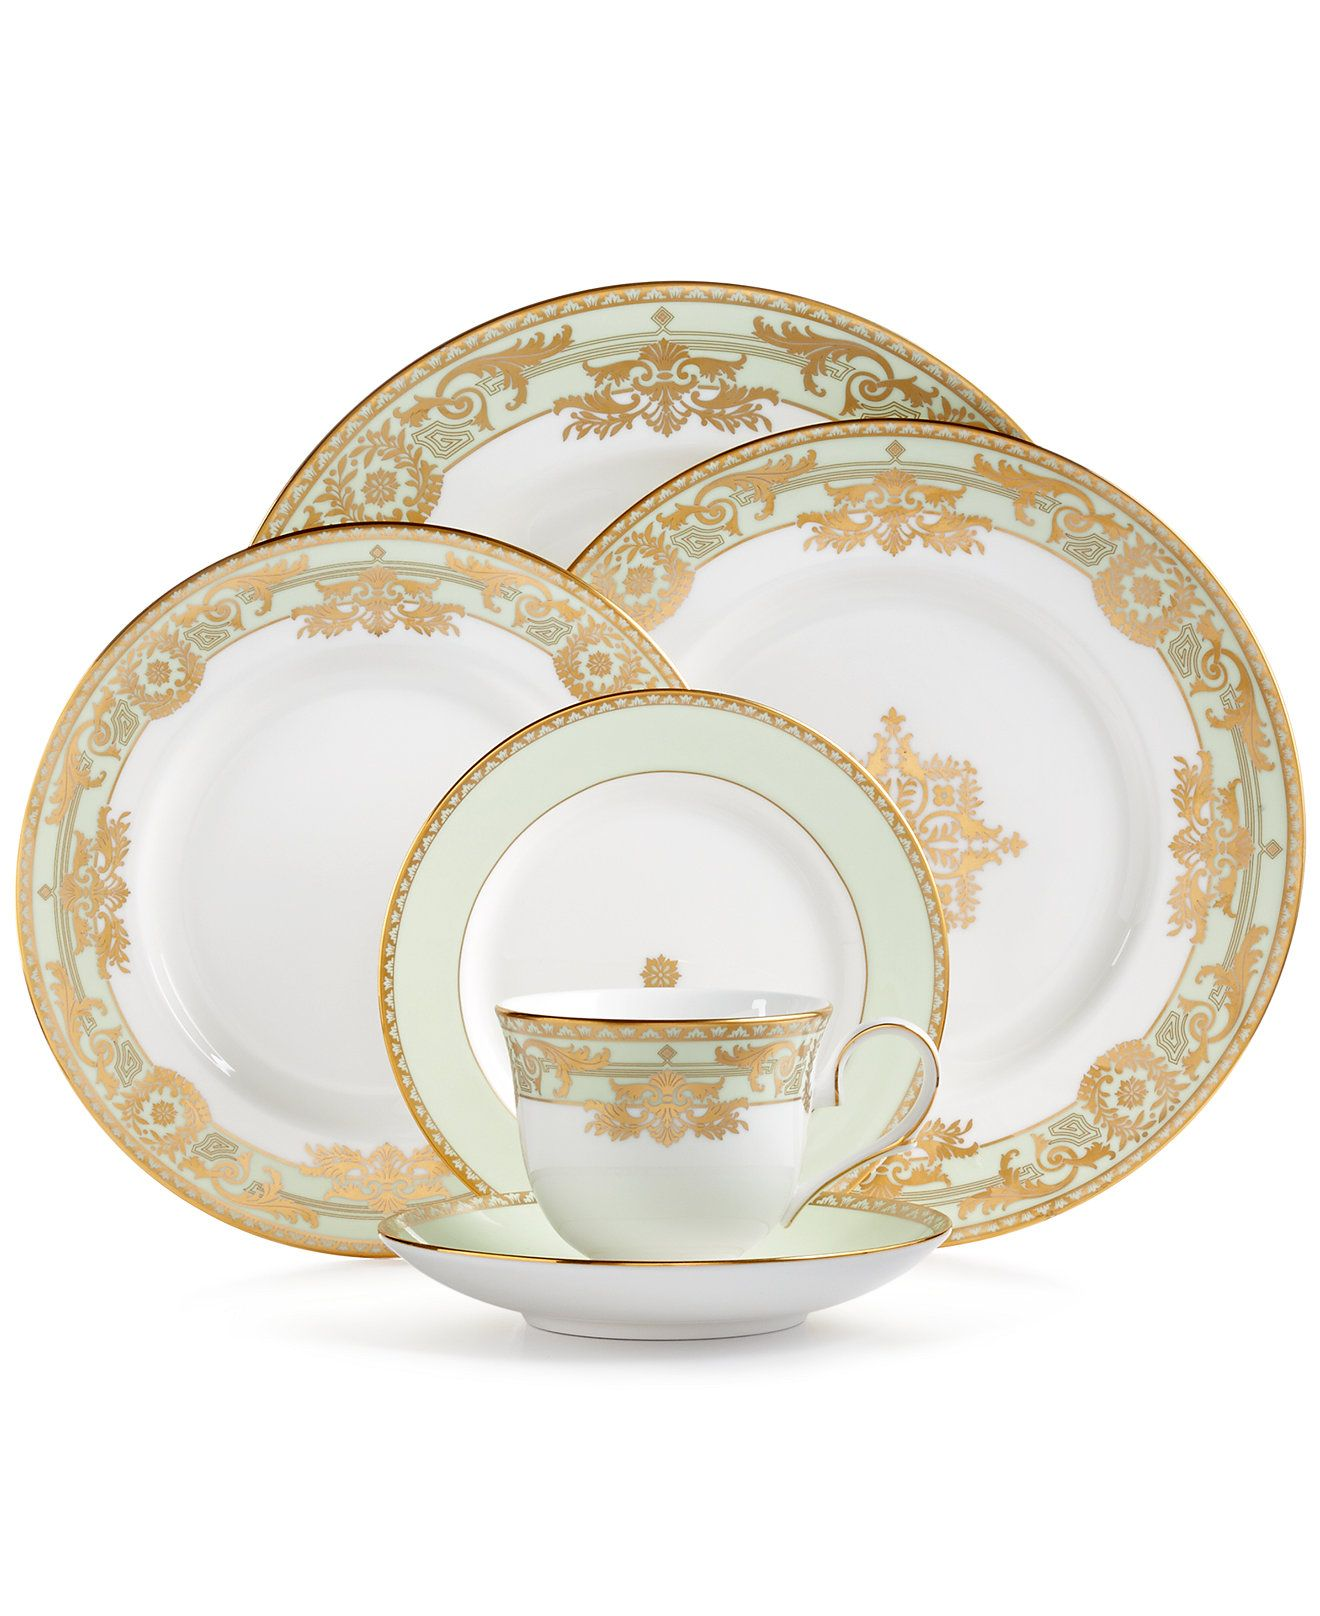 Lenox Republic Gold Banded Ivory China Saucer by Lenox